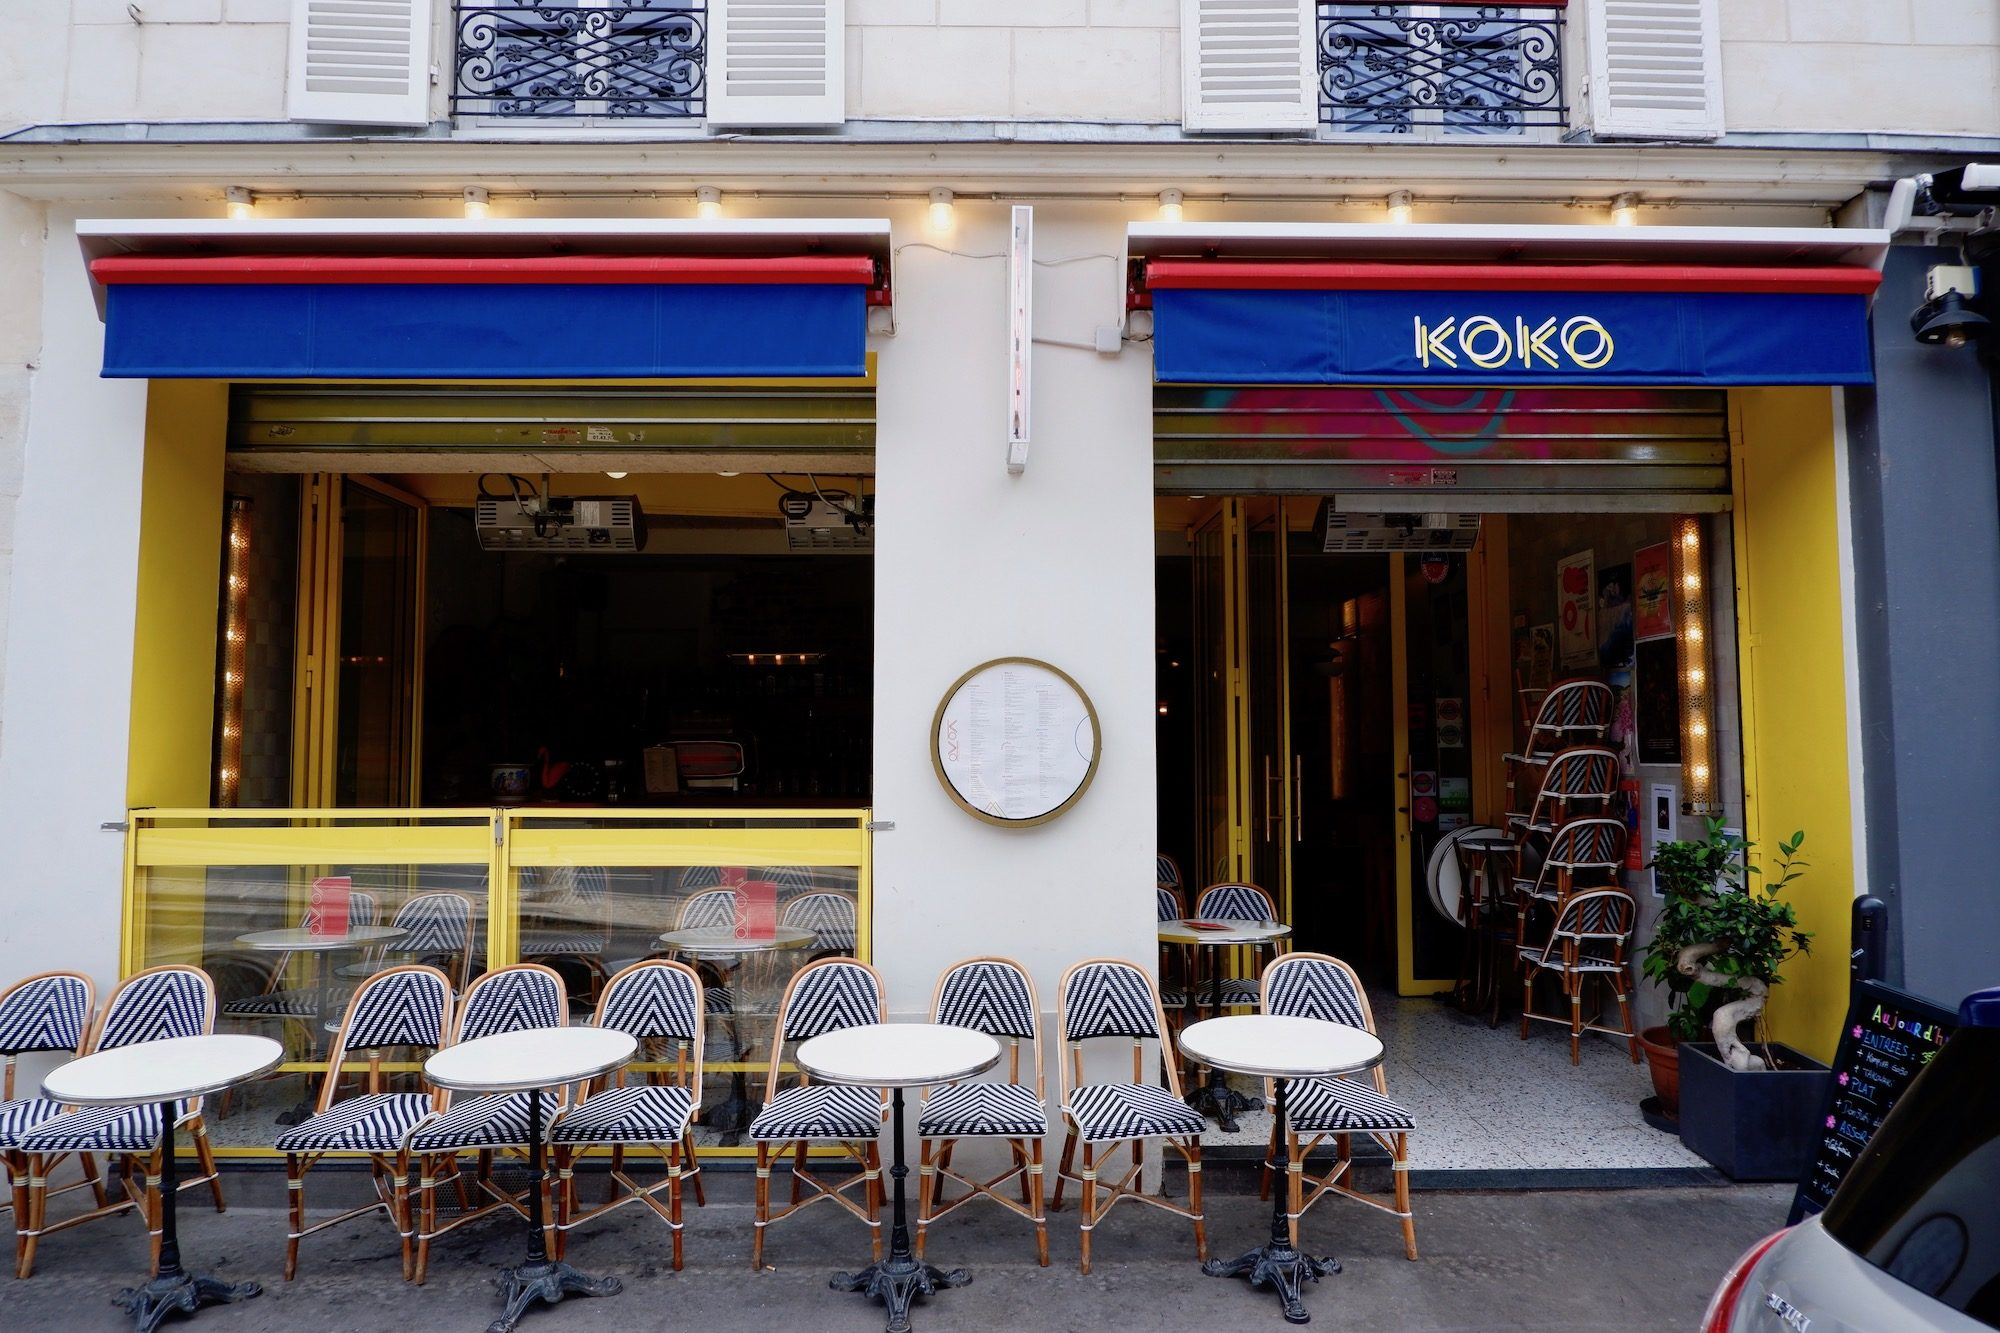 One of the quirky lively restaurants and bars on the canal de l'Ourcq, Koko Canal, with its bright yellow, red and blue exterior.